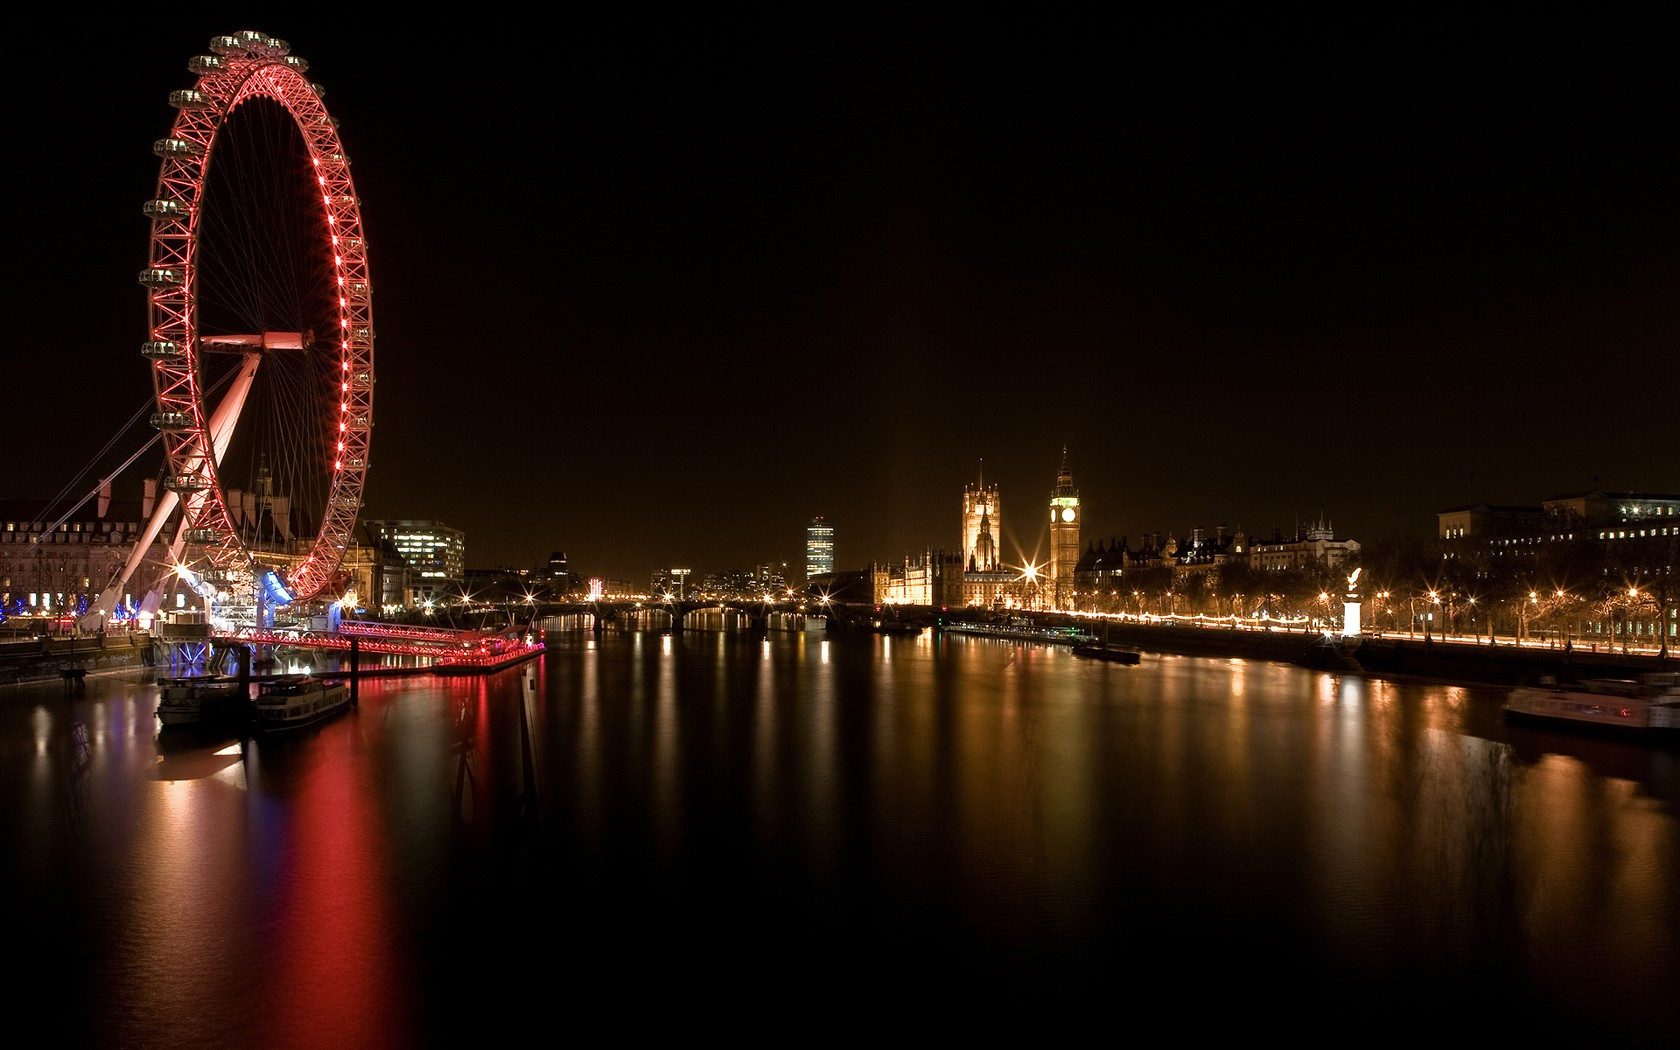 General 1680x1050 London London Eye UK ferris wheel River Thames Big Ben